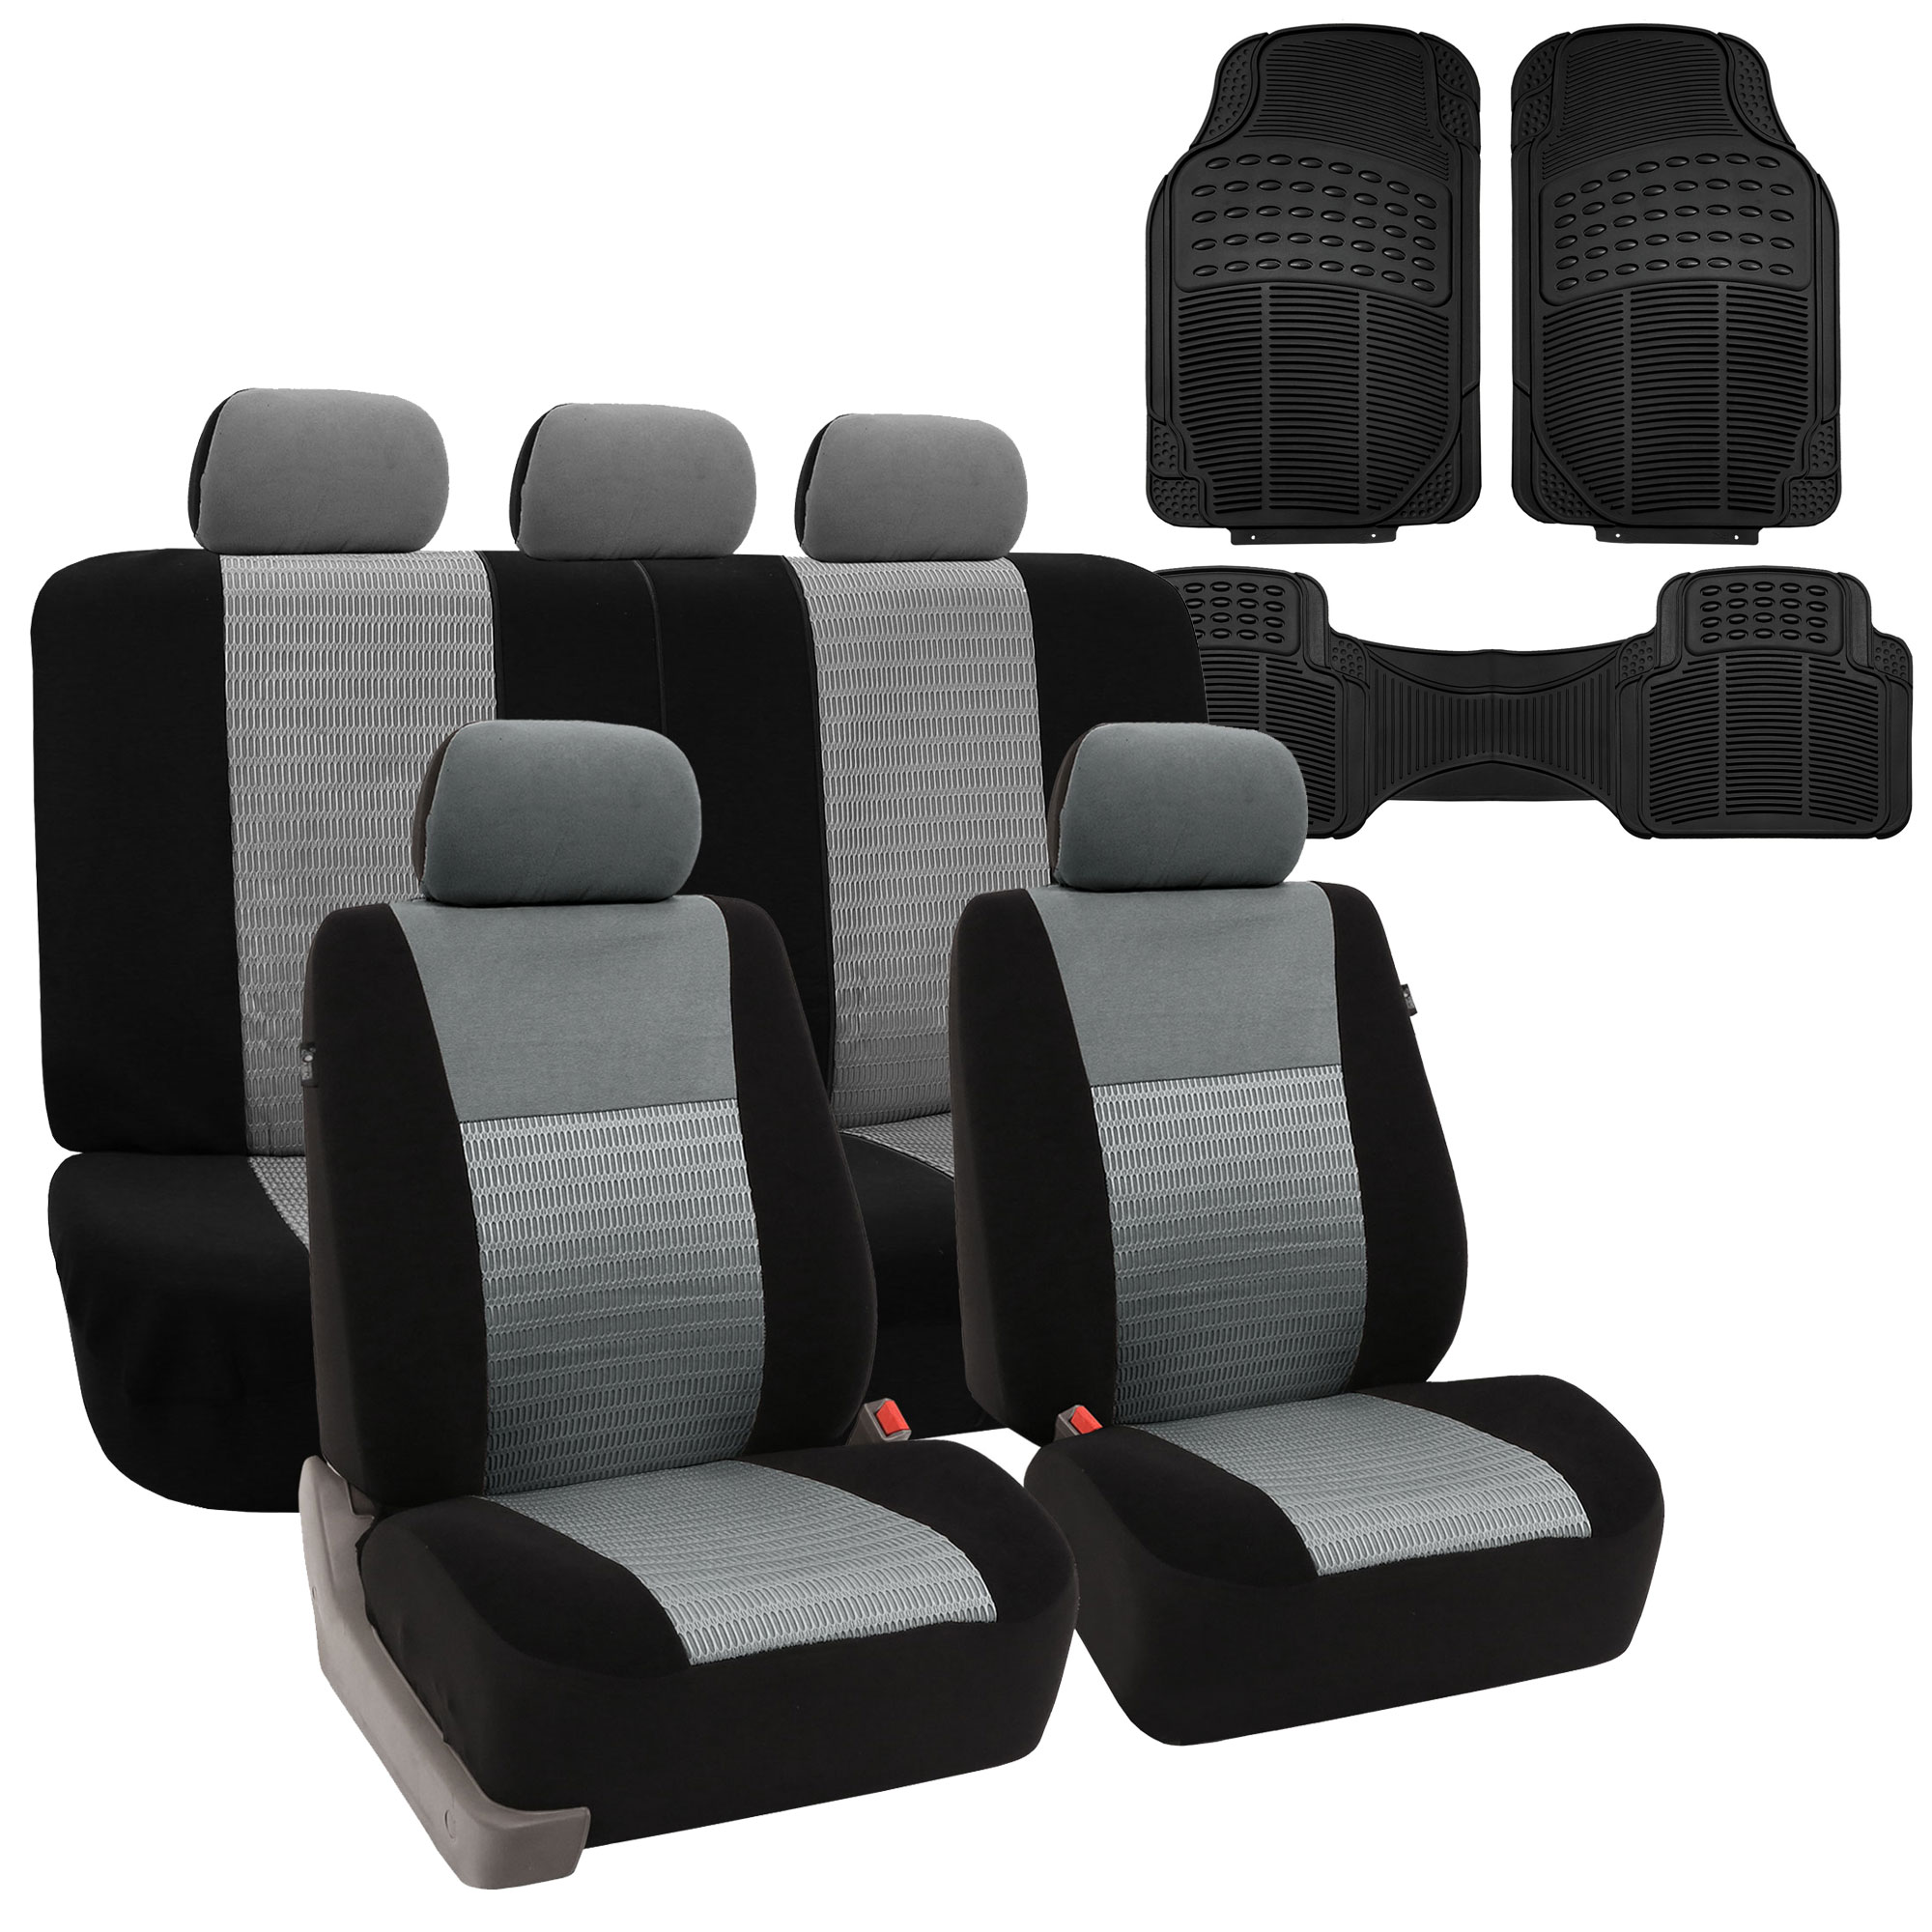 Car Seat Covers Set W/ All Weather Floor Mats 5 Colors